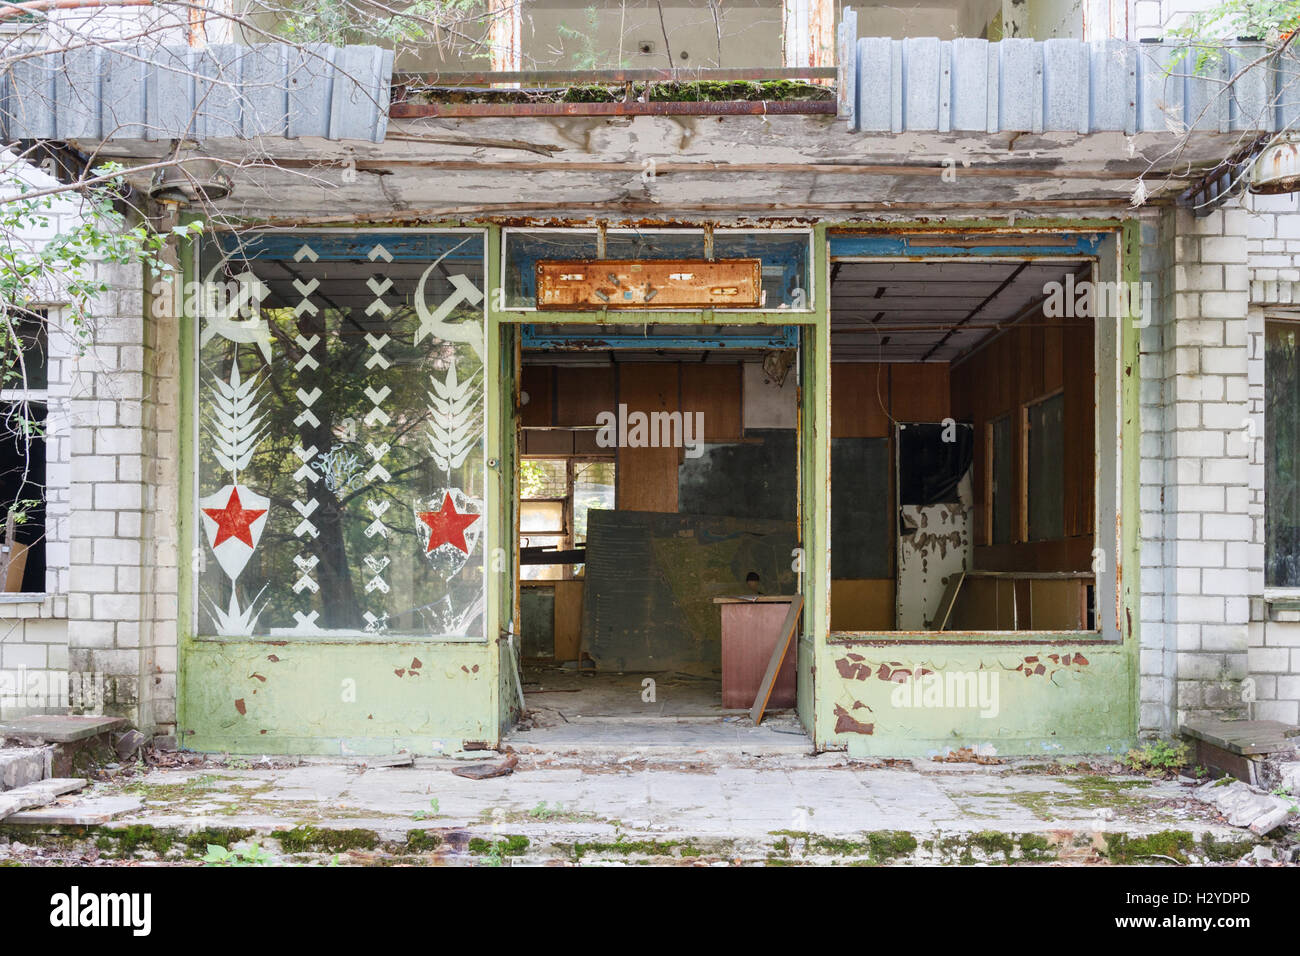 Entrance of the Prypiat police office. Prypiat was abandoned after the 1986 Chernobyl nuclear disaster. - Stock Image